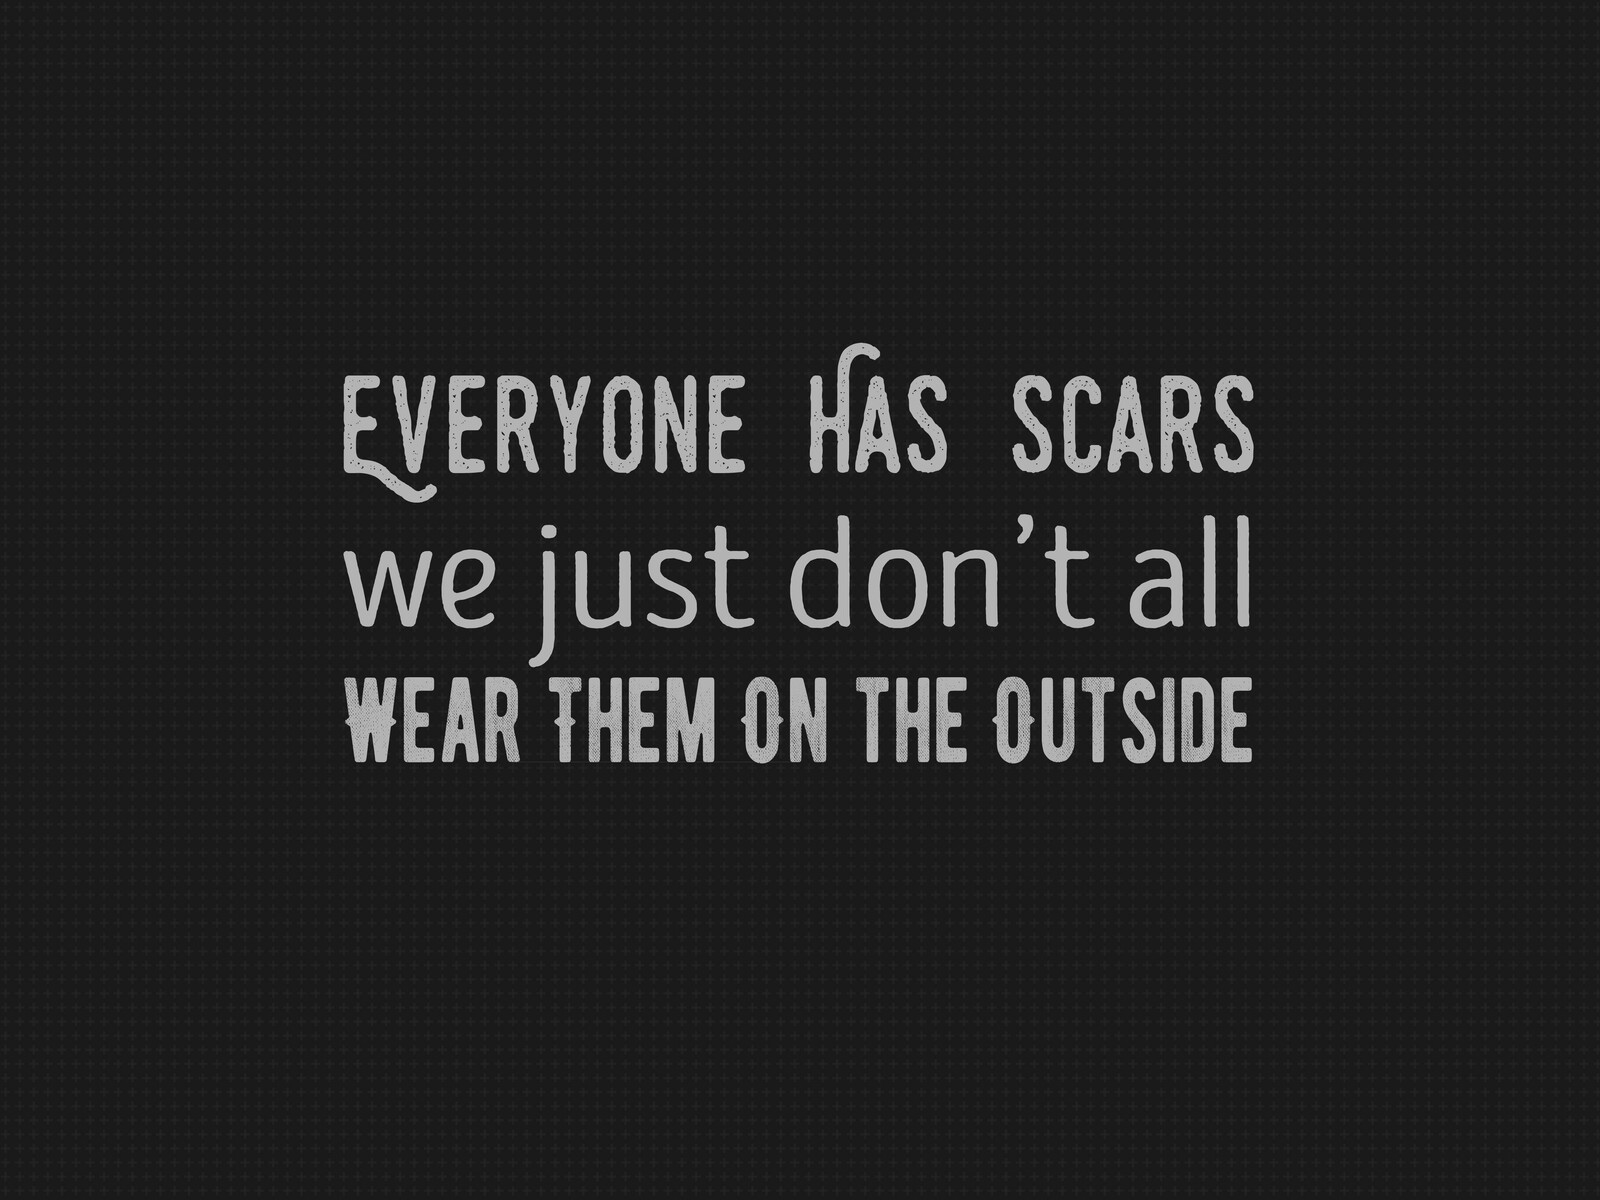 scars-quote-typography-5k-xt.jpg